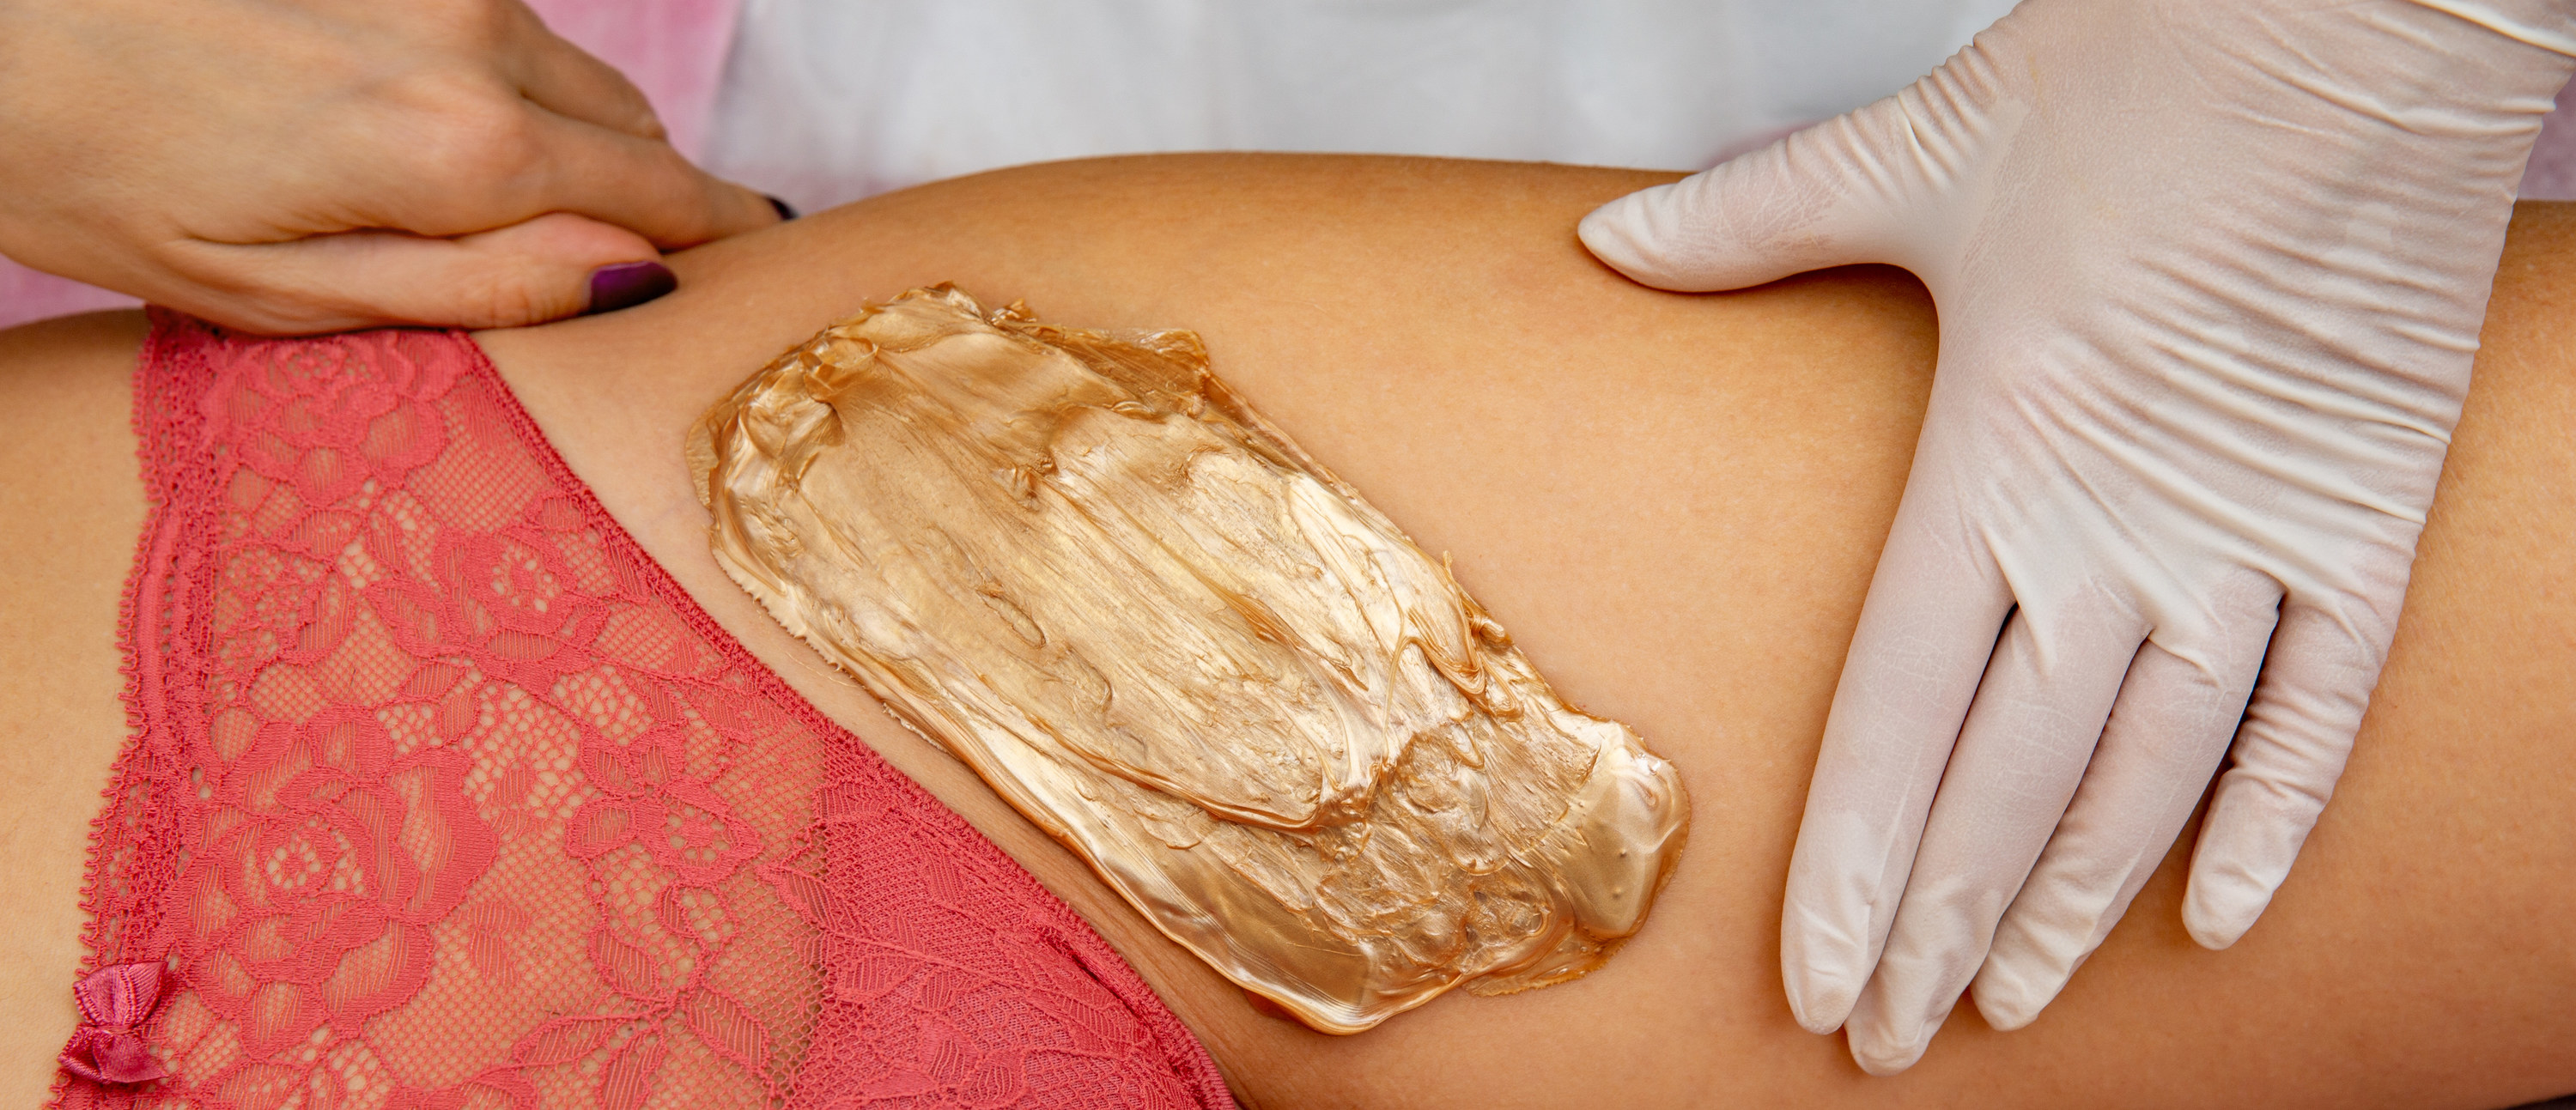 An image of a woman with wax near her genital area